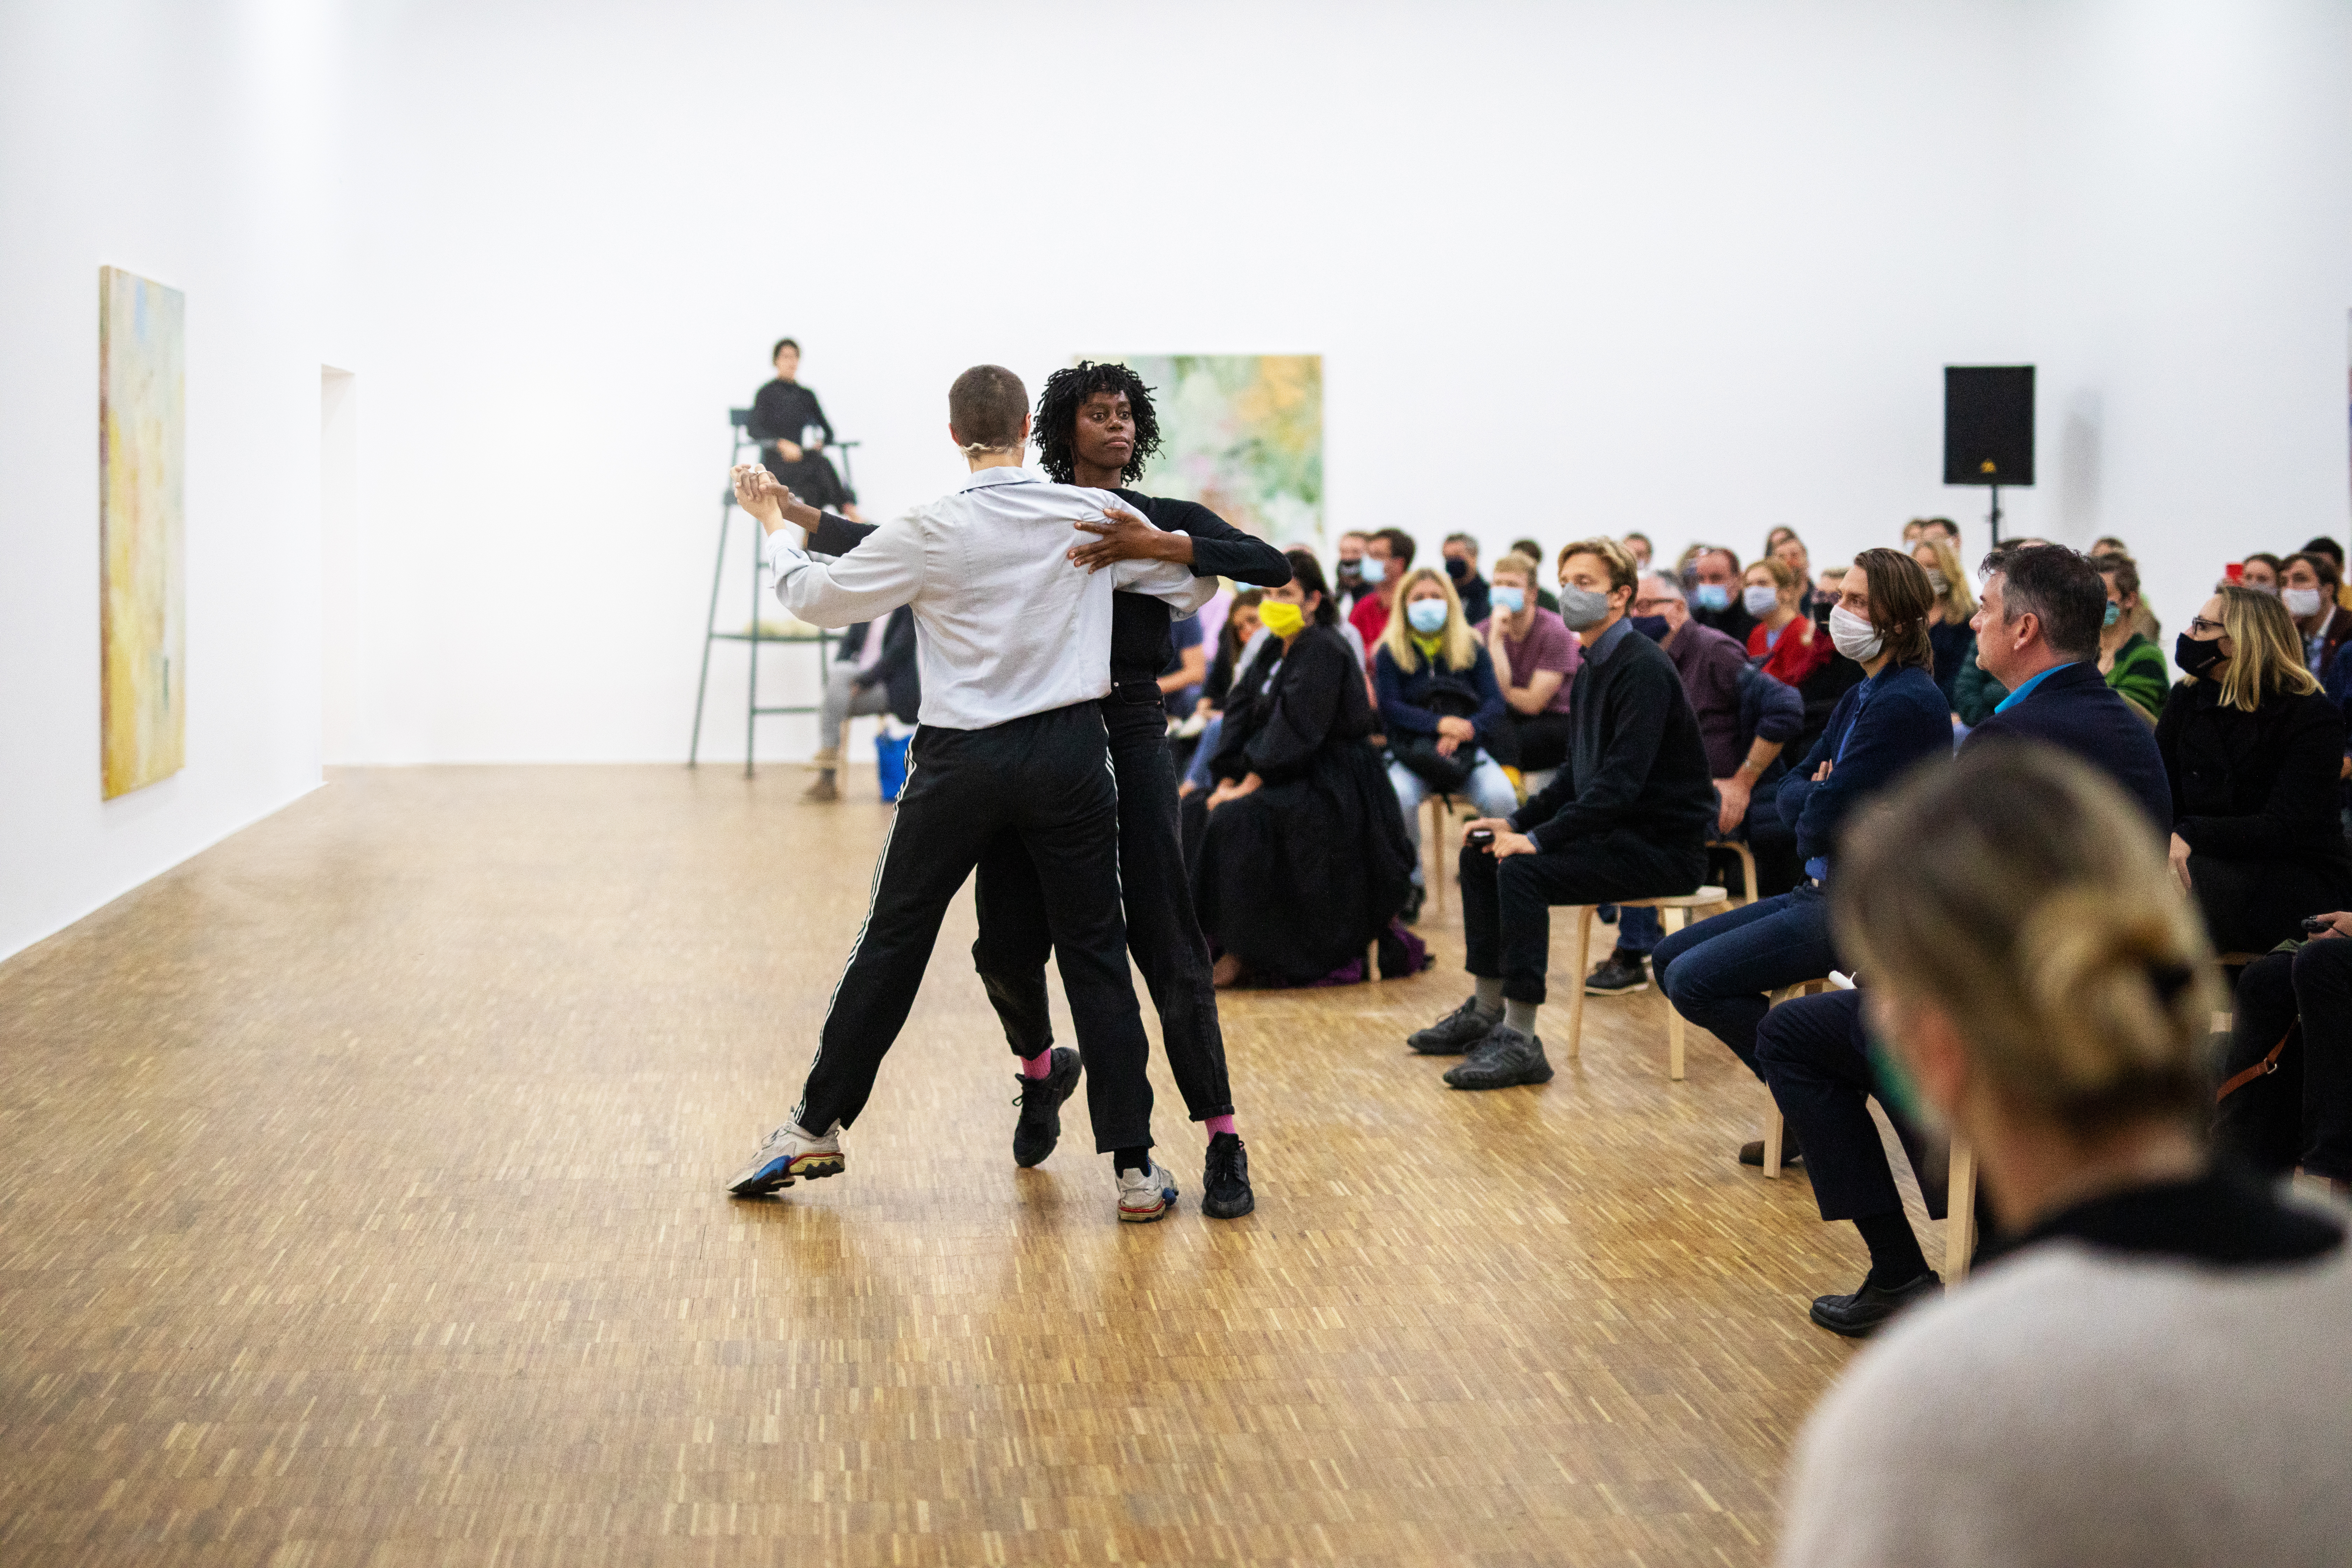 Performance 'Everywhere Been There', 2020. Mit Temitope Ajose-Cutting und Leah Marojevic. Foto: Michael Groessinger, © Salzburger Kunstverein